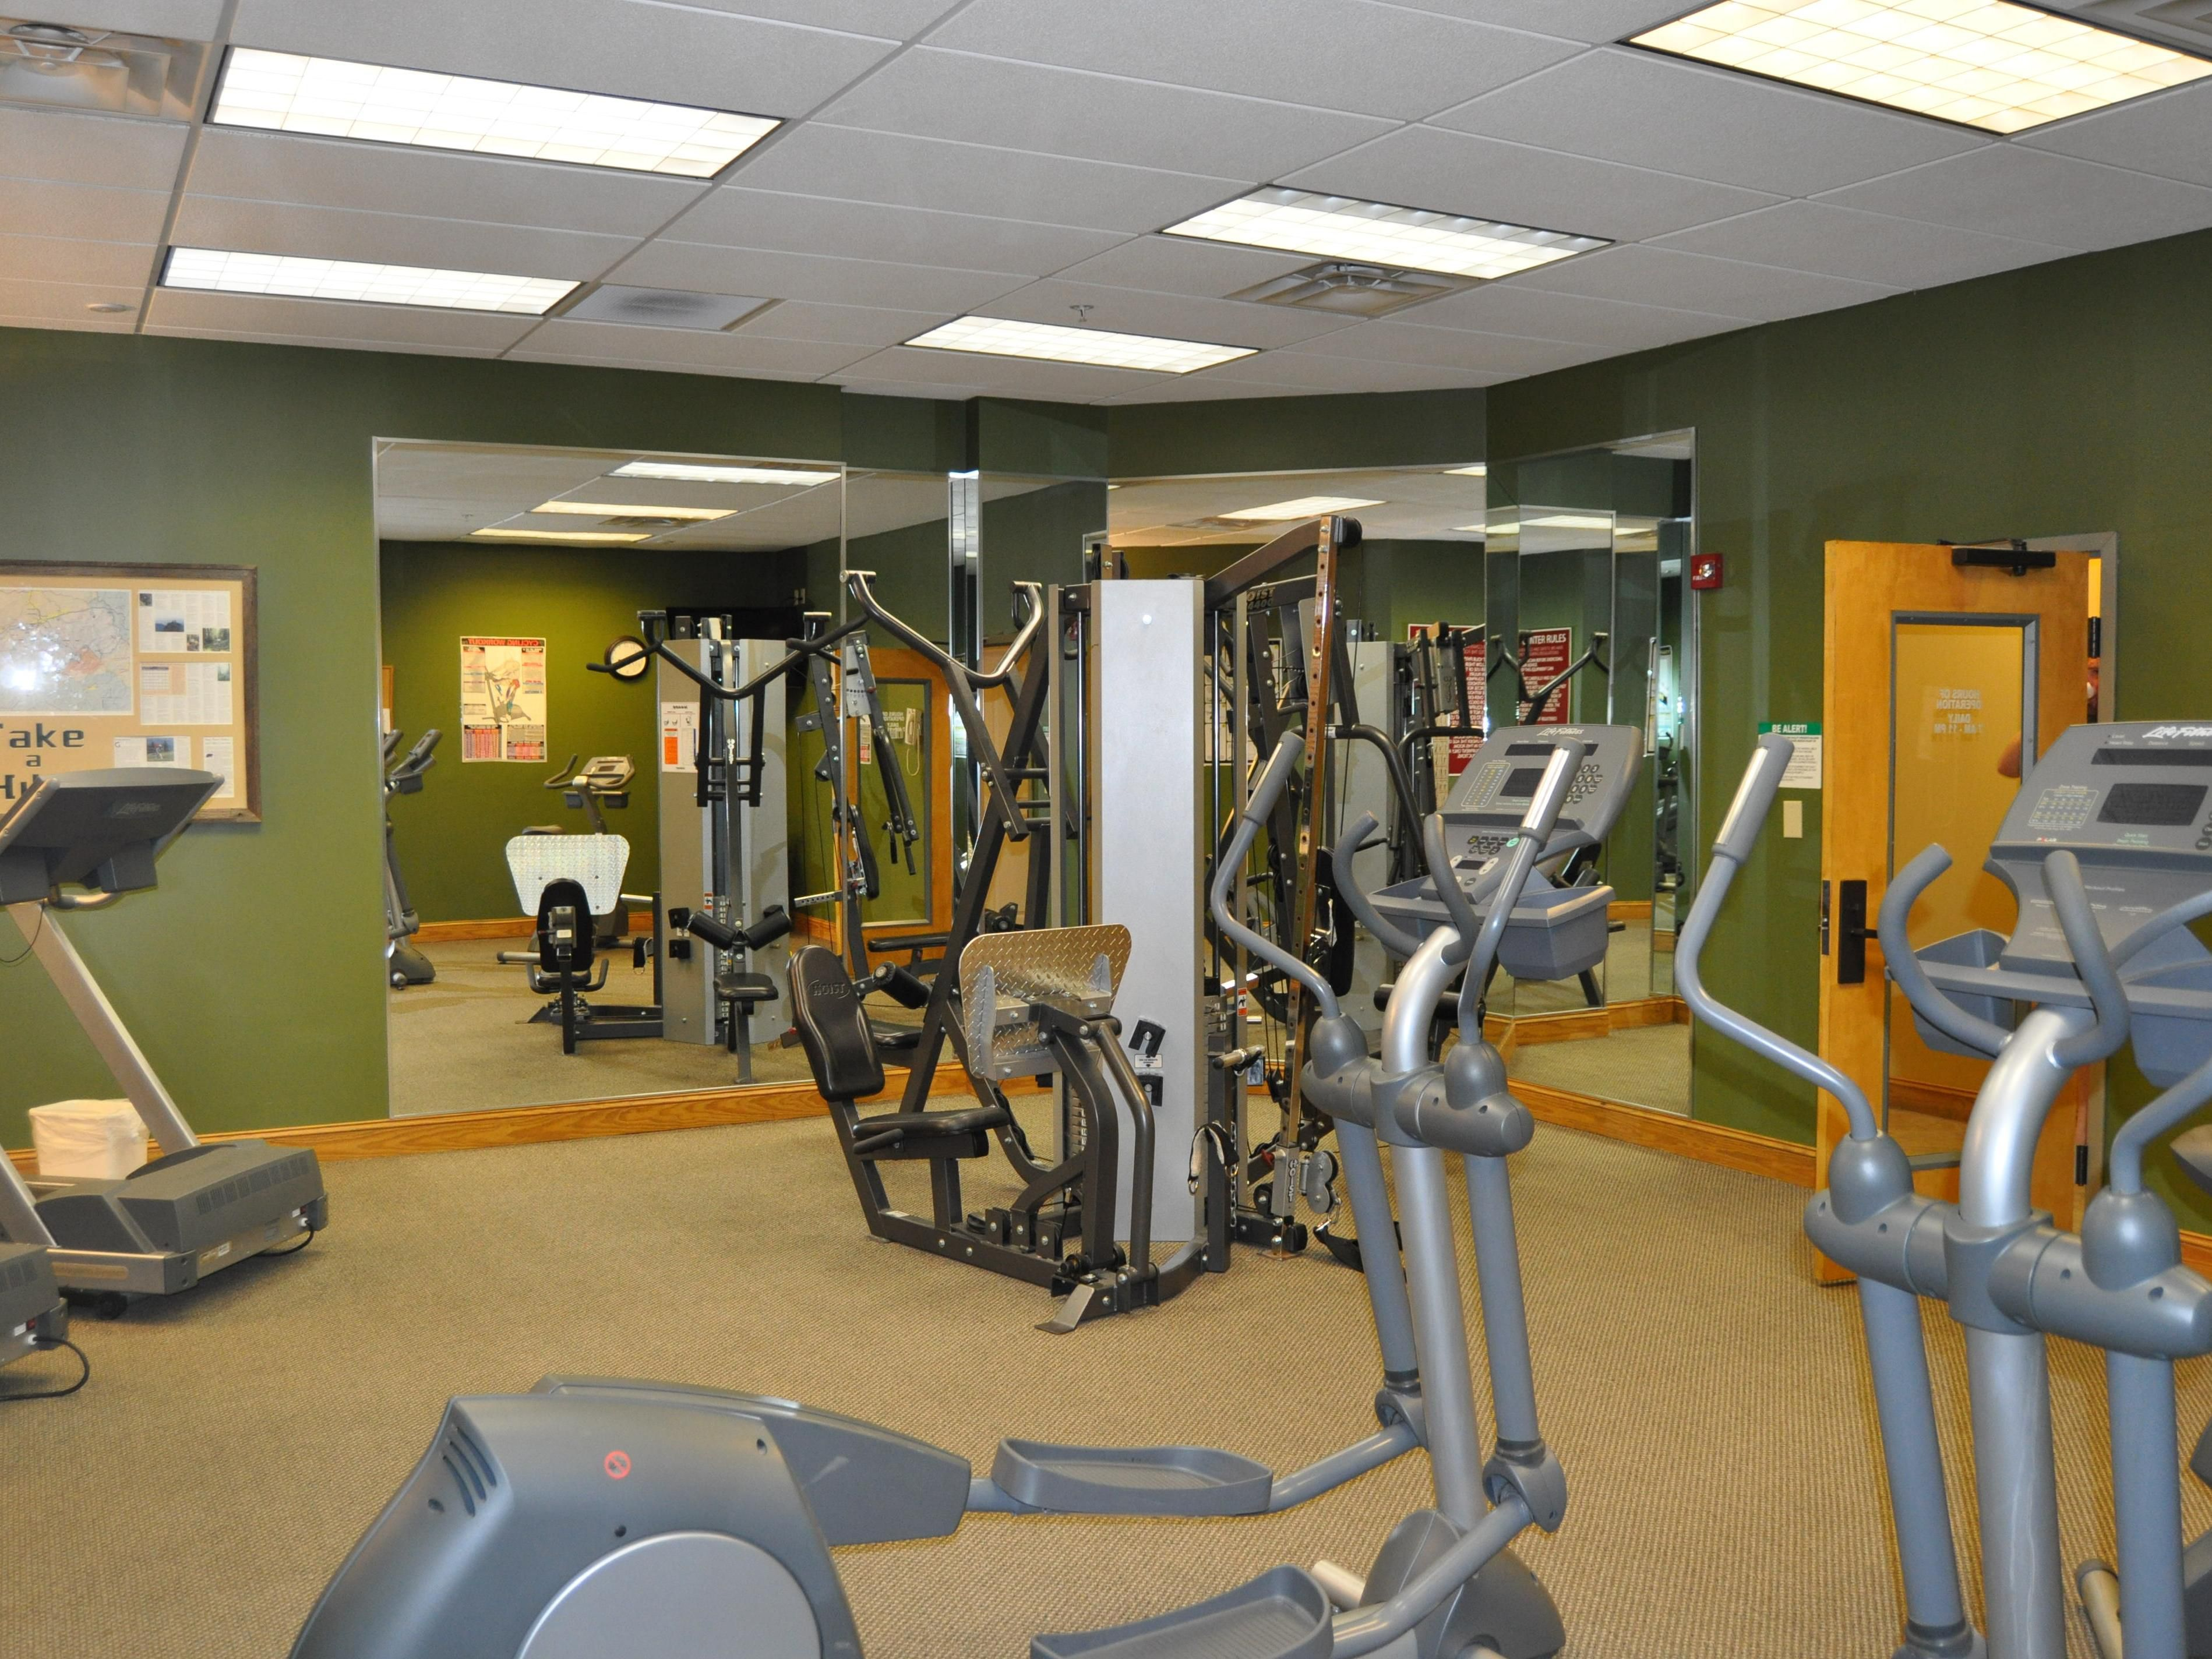 Enjoy working out at River Island's Mussels Fitness Center